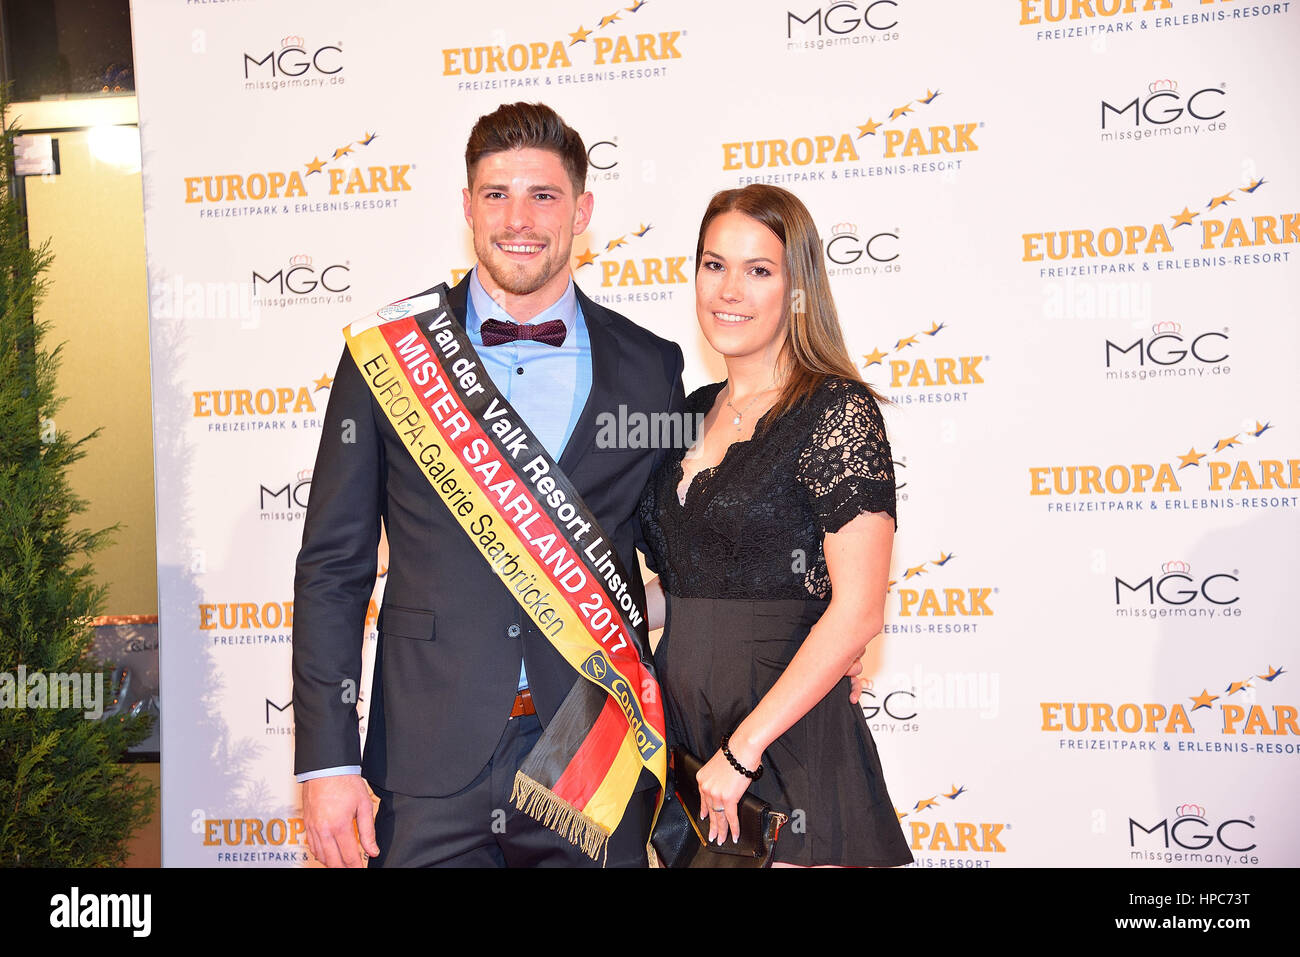 February 18, 2017 - Miss Germany 2016, Lena Bröder, has passed her crown to the newly elected Miss Germany - Stock Image